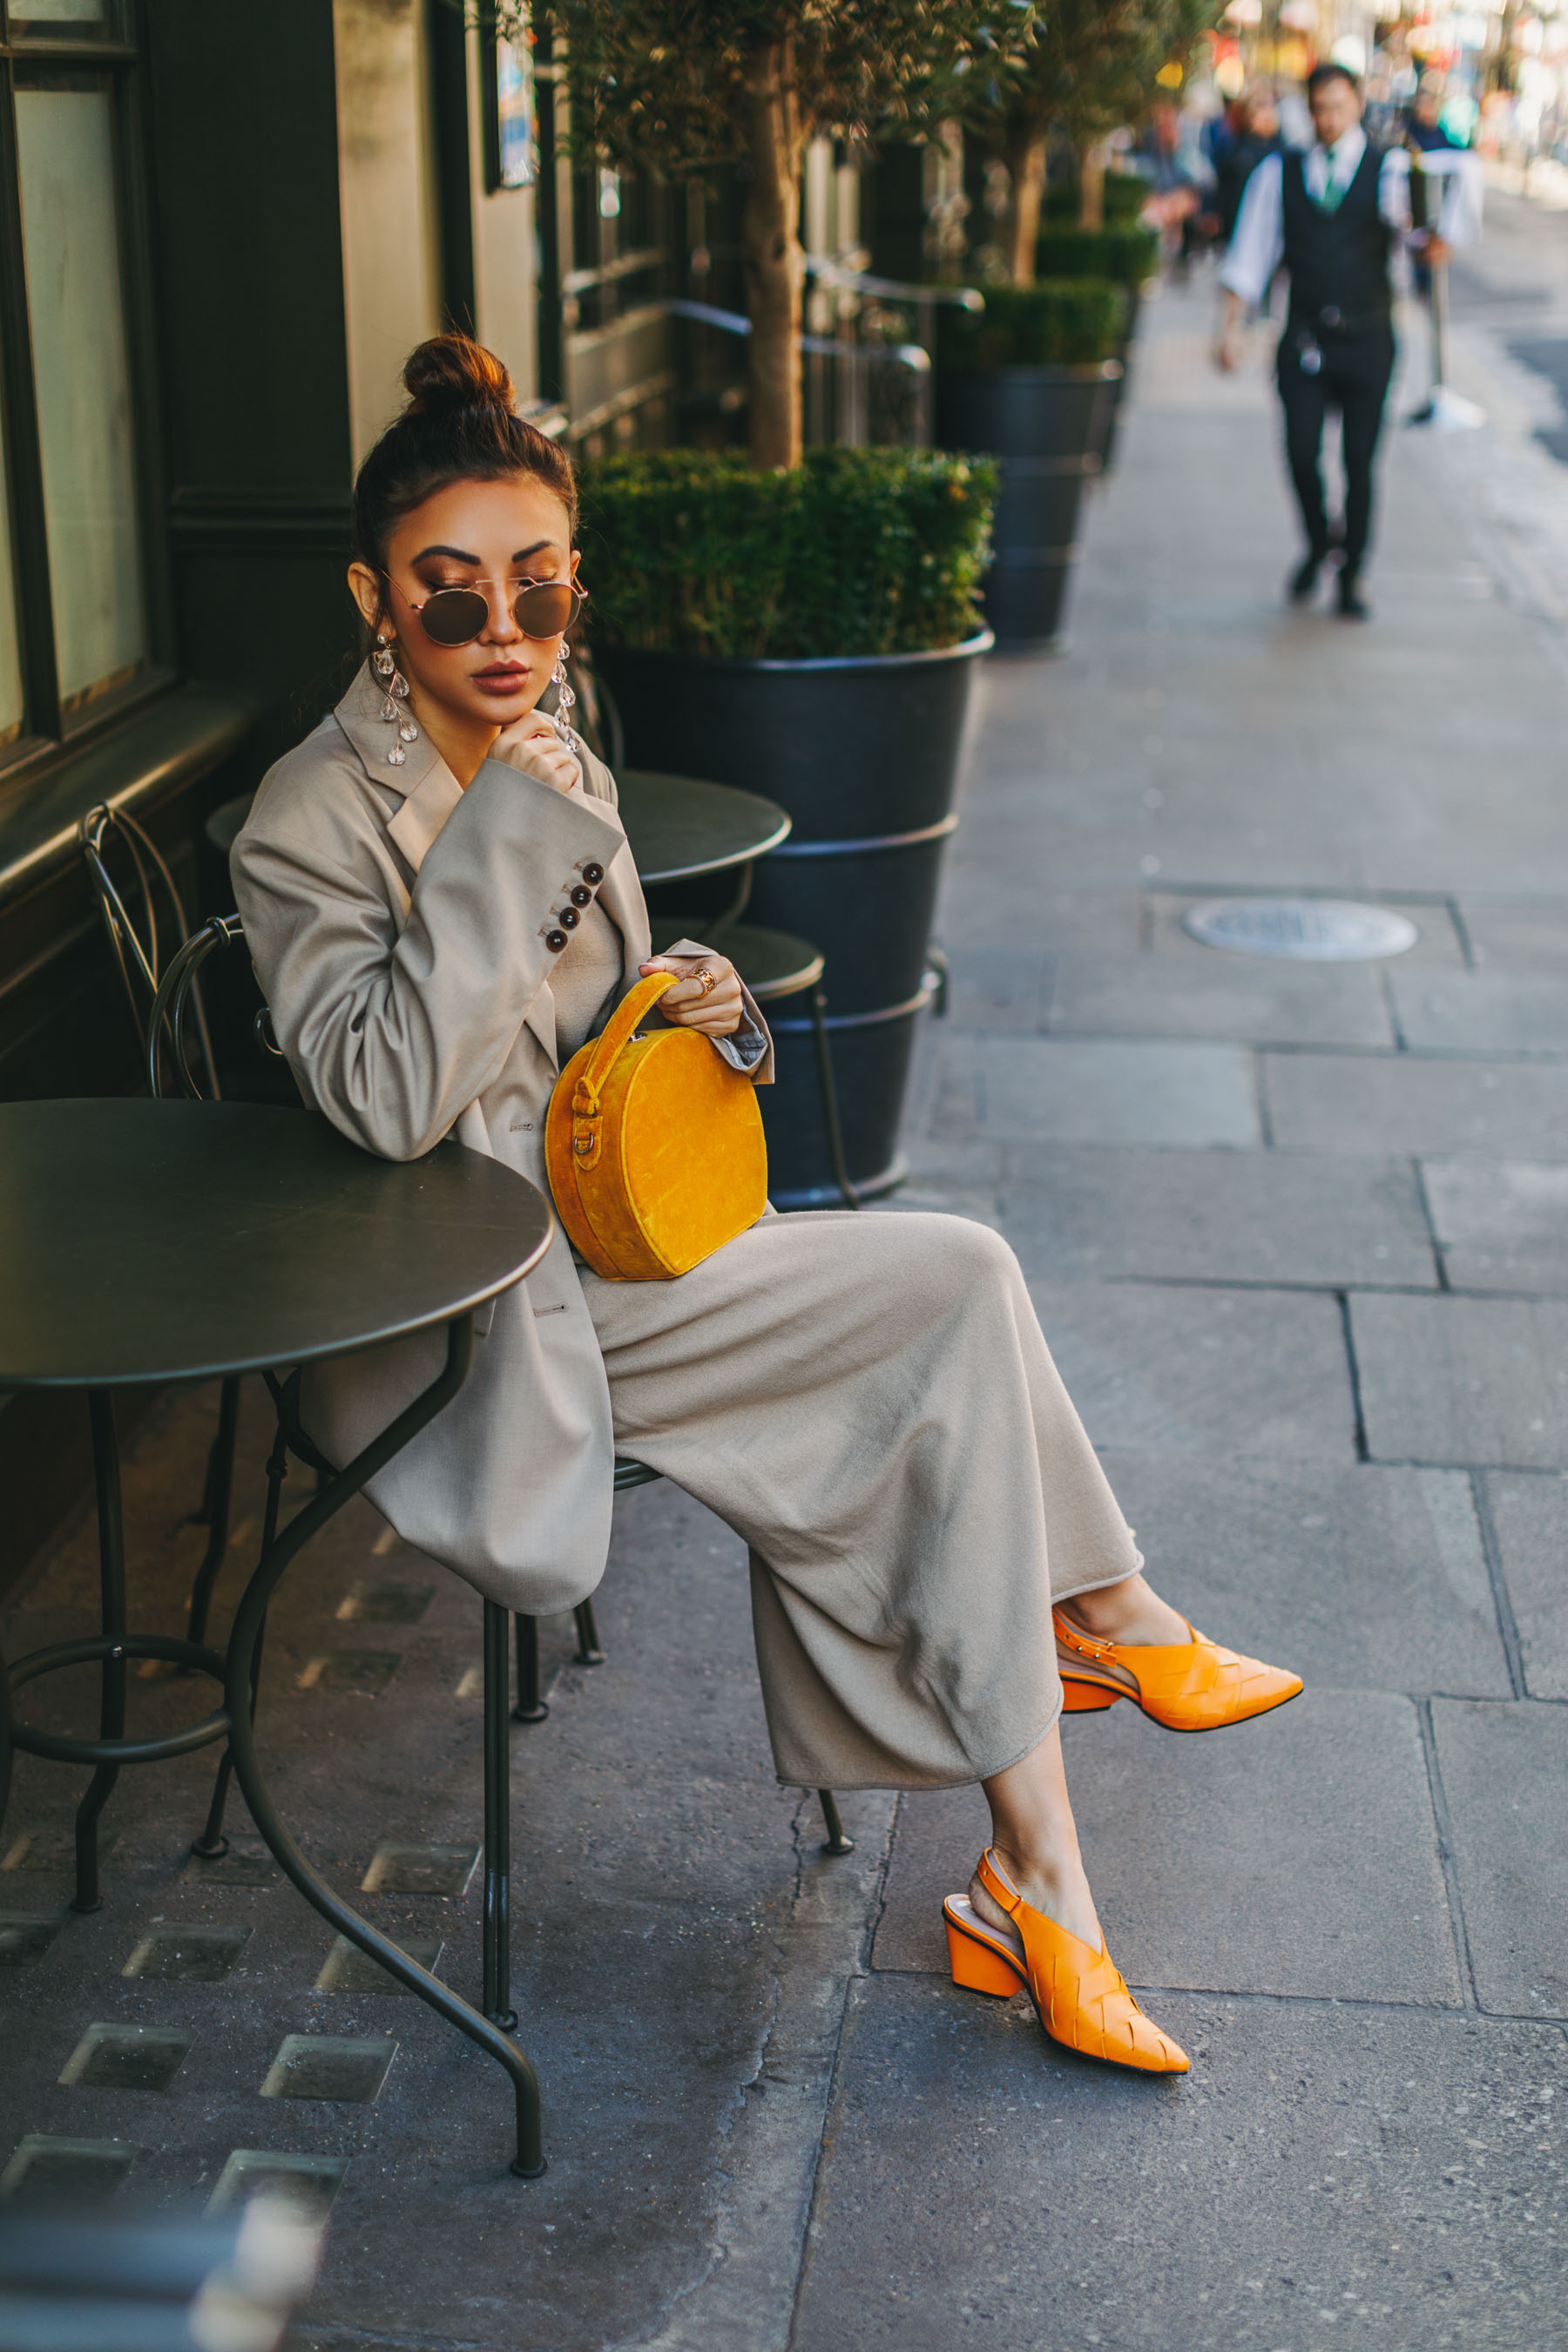 London Fashion Week Recap - Beige Outfit with yellow handbag, yellow circle bag // Notjessfashion.com